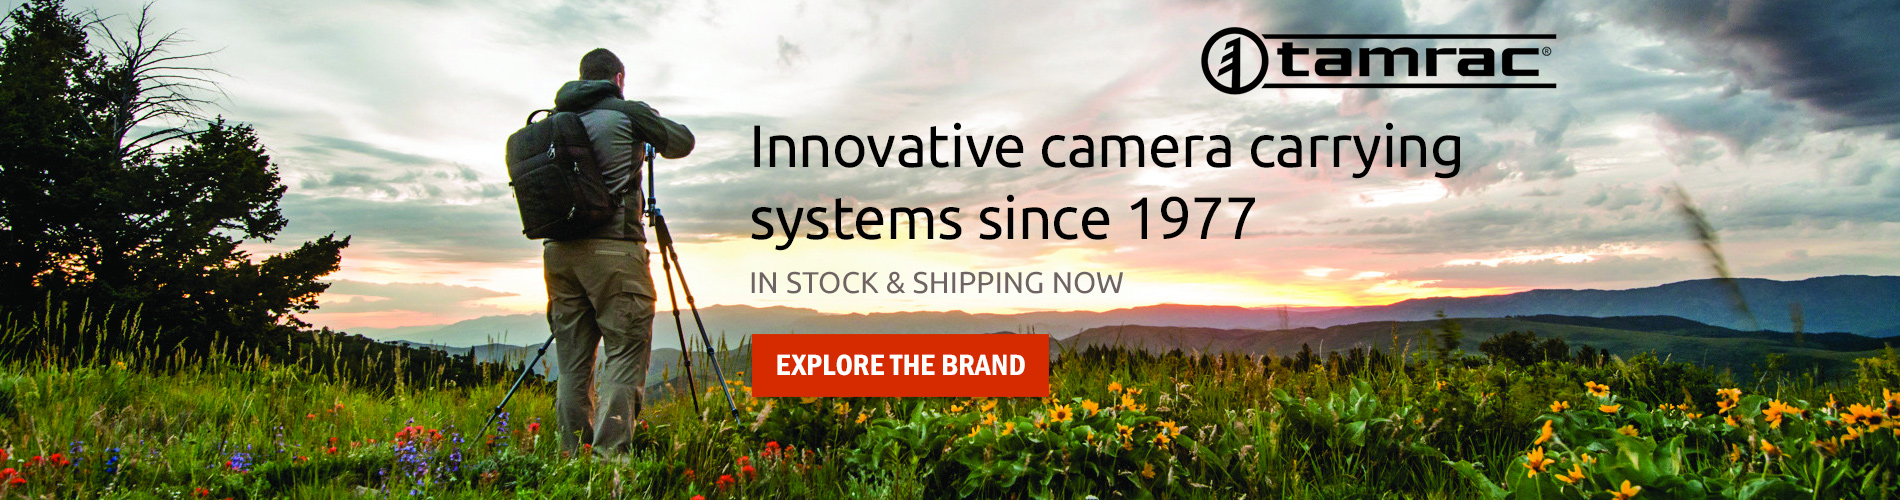 Introducing Tamrac, Innovative camera carrying systems since 1977. In stock & shipping now! Explore the Brand →